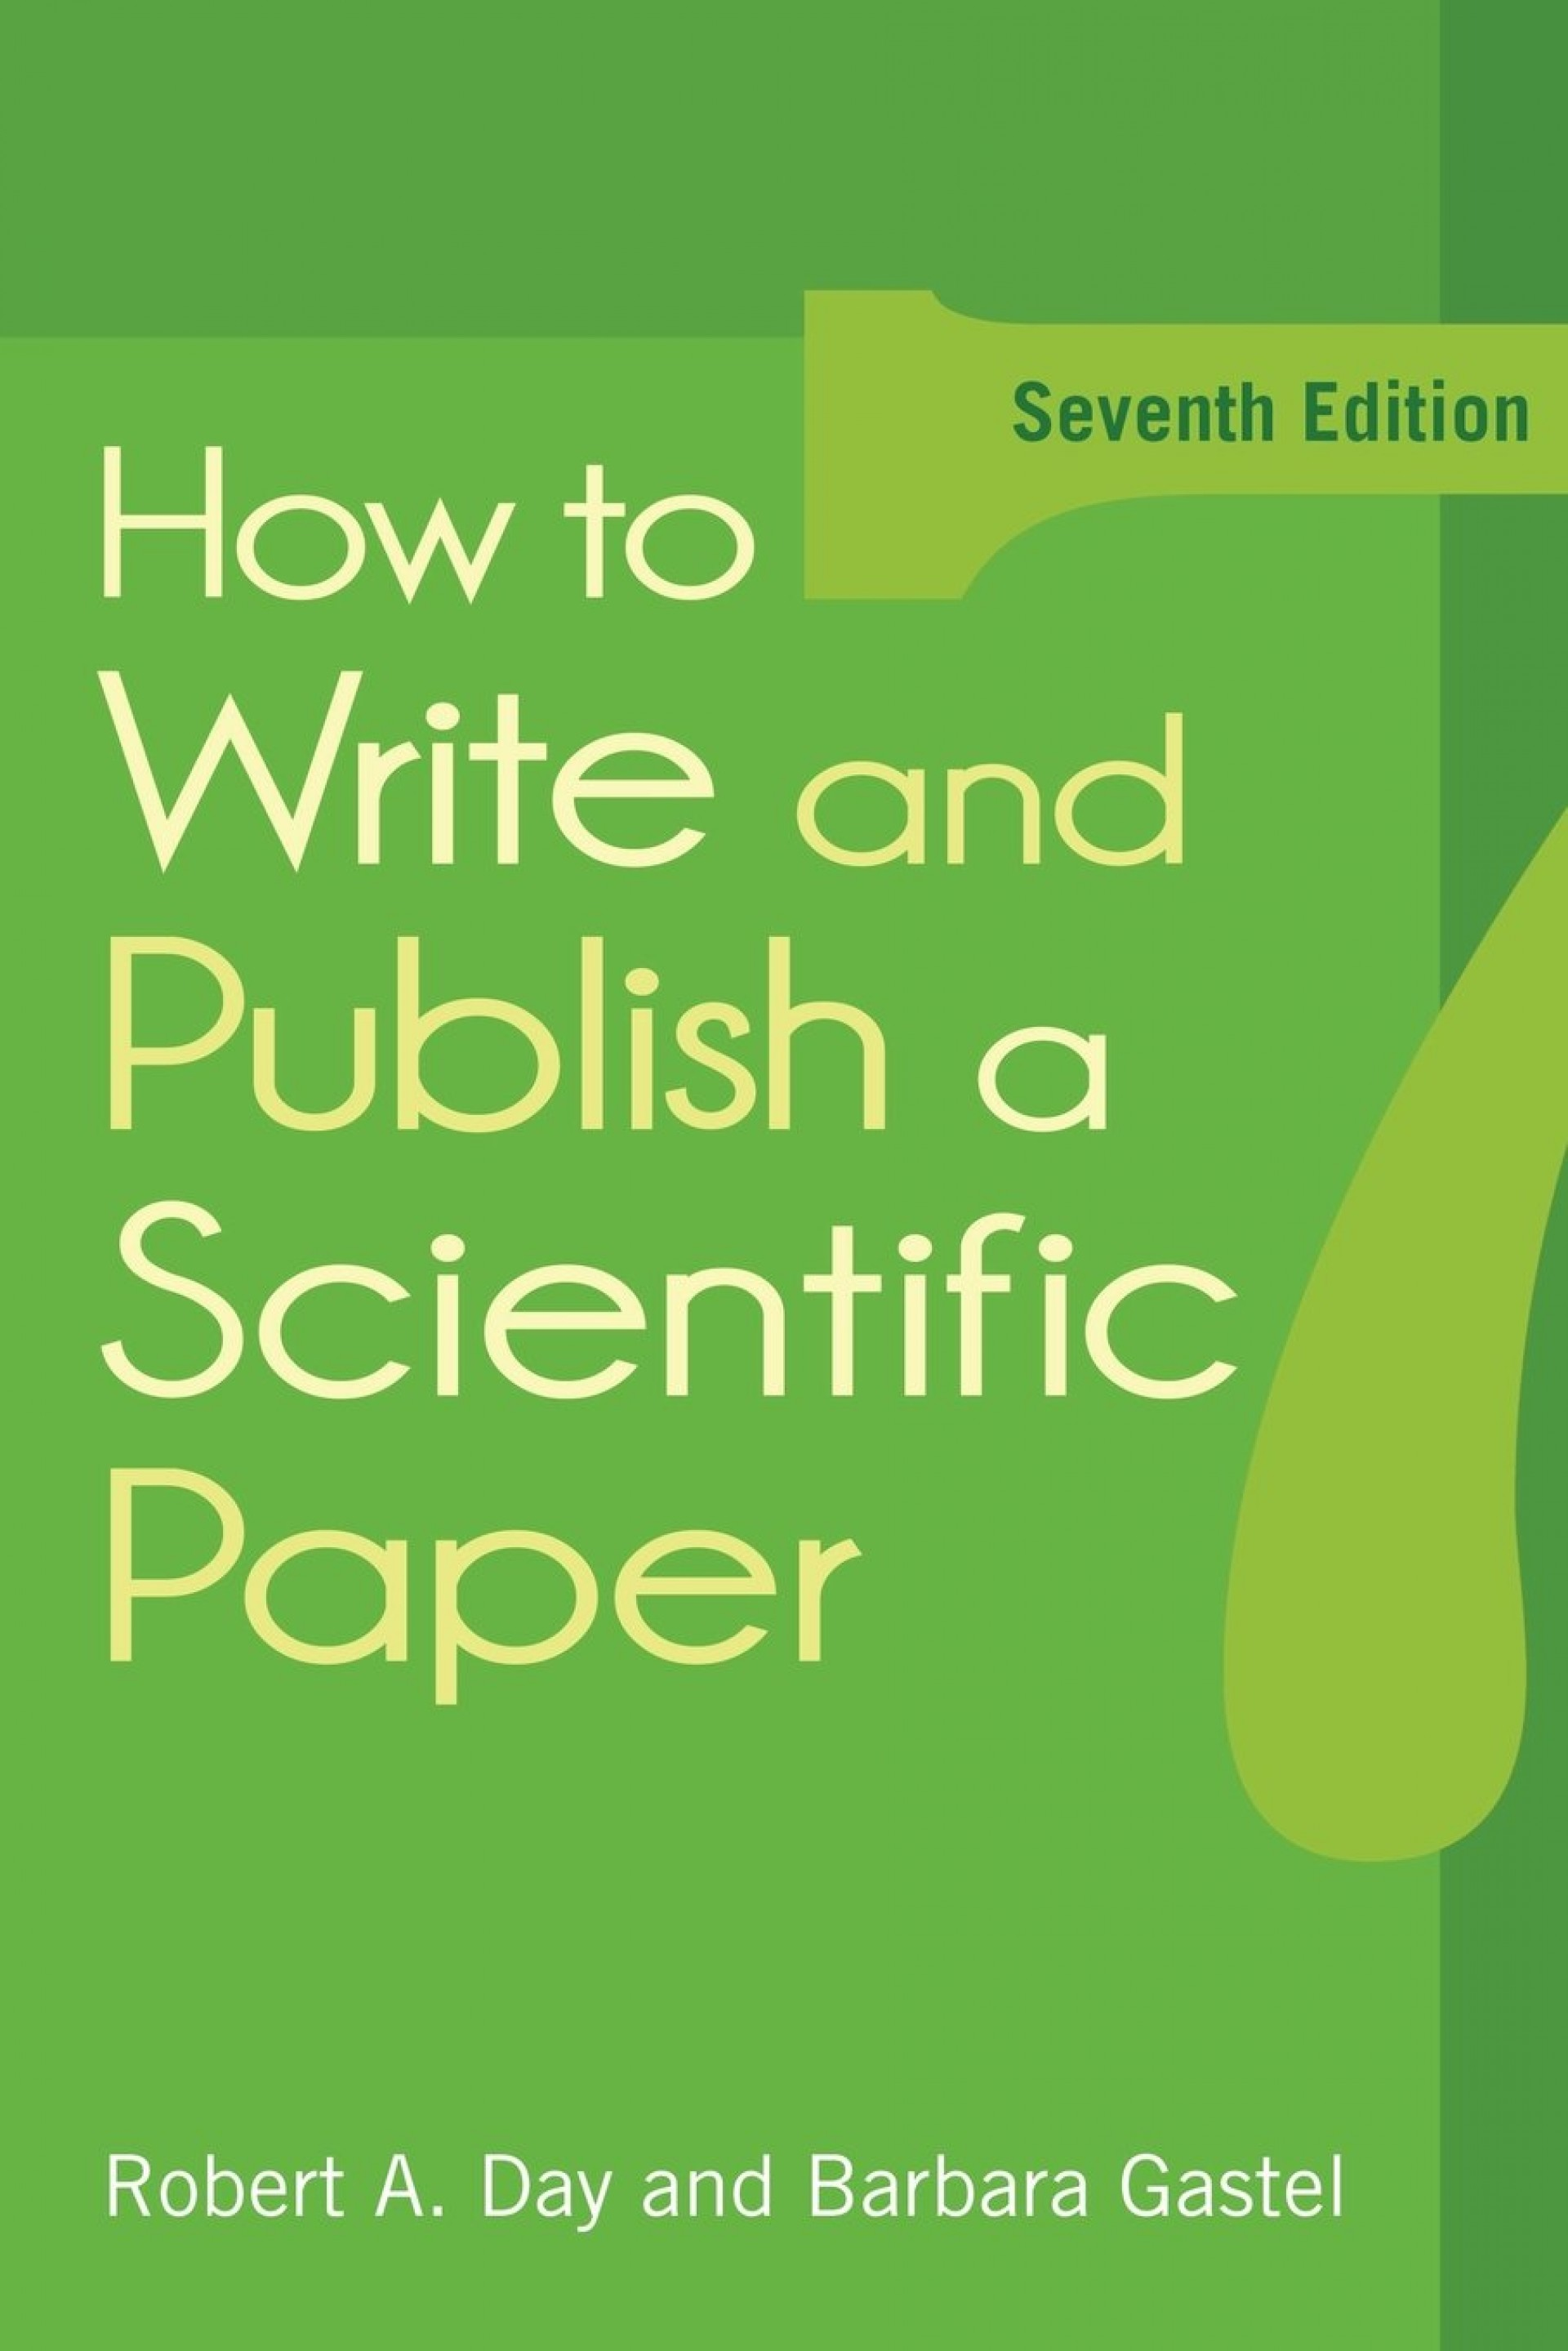 002 Research Paper How To Write Scientific Pdf Writing Sensational And Publish A Computer Science 1920